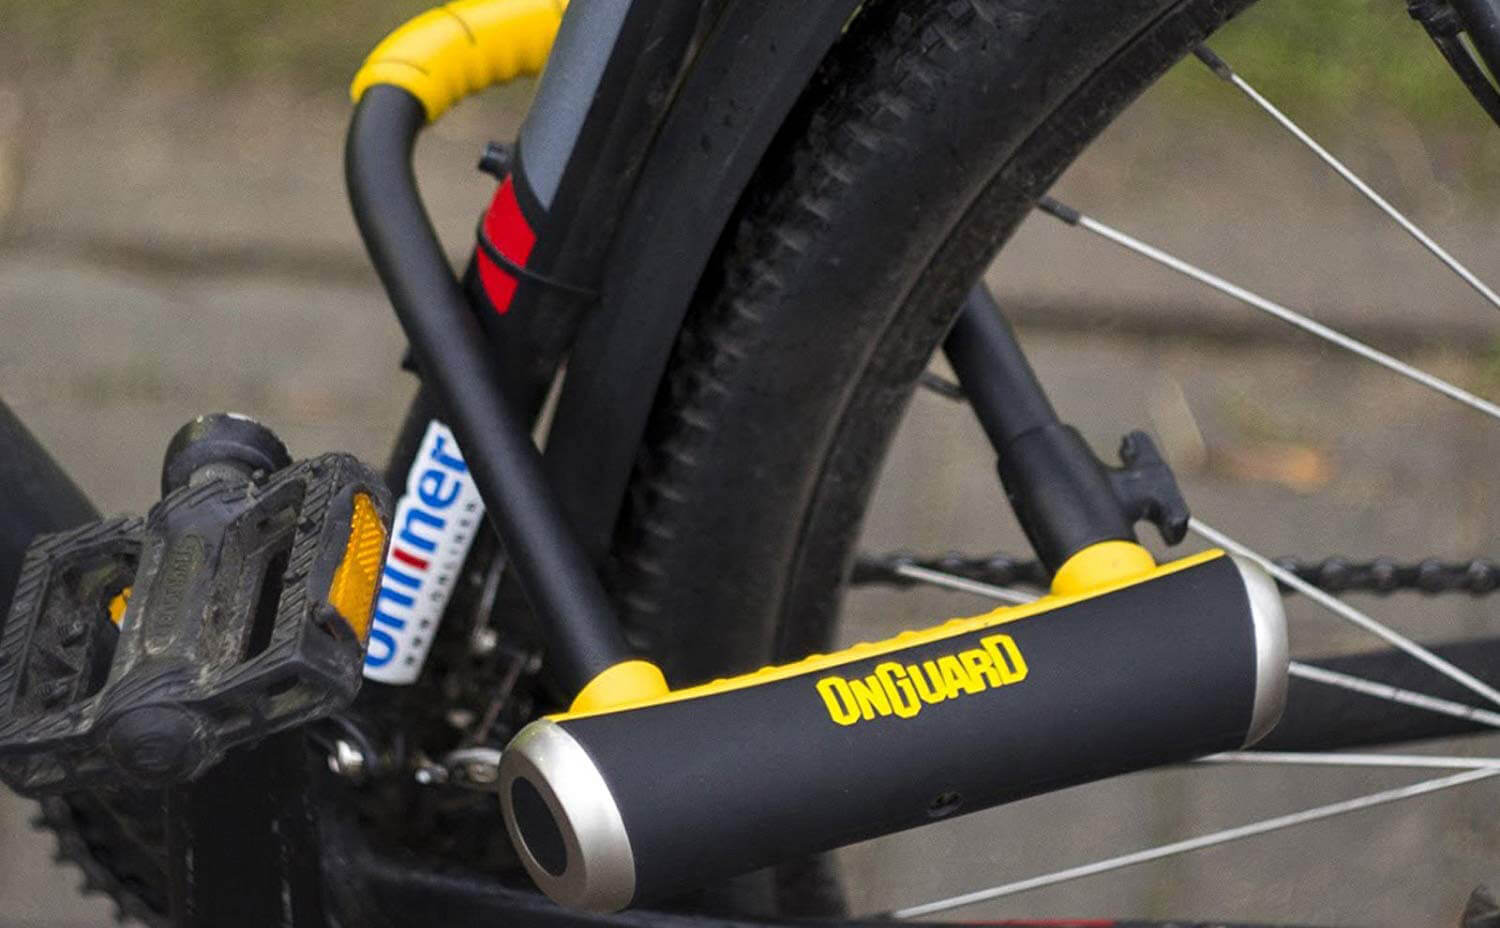 Onguard Brute Bike lock